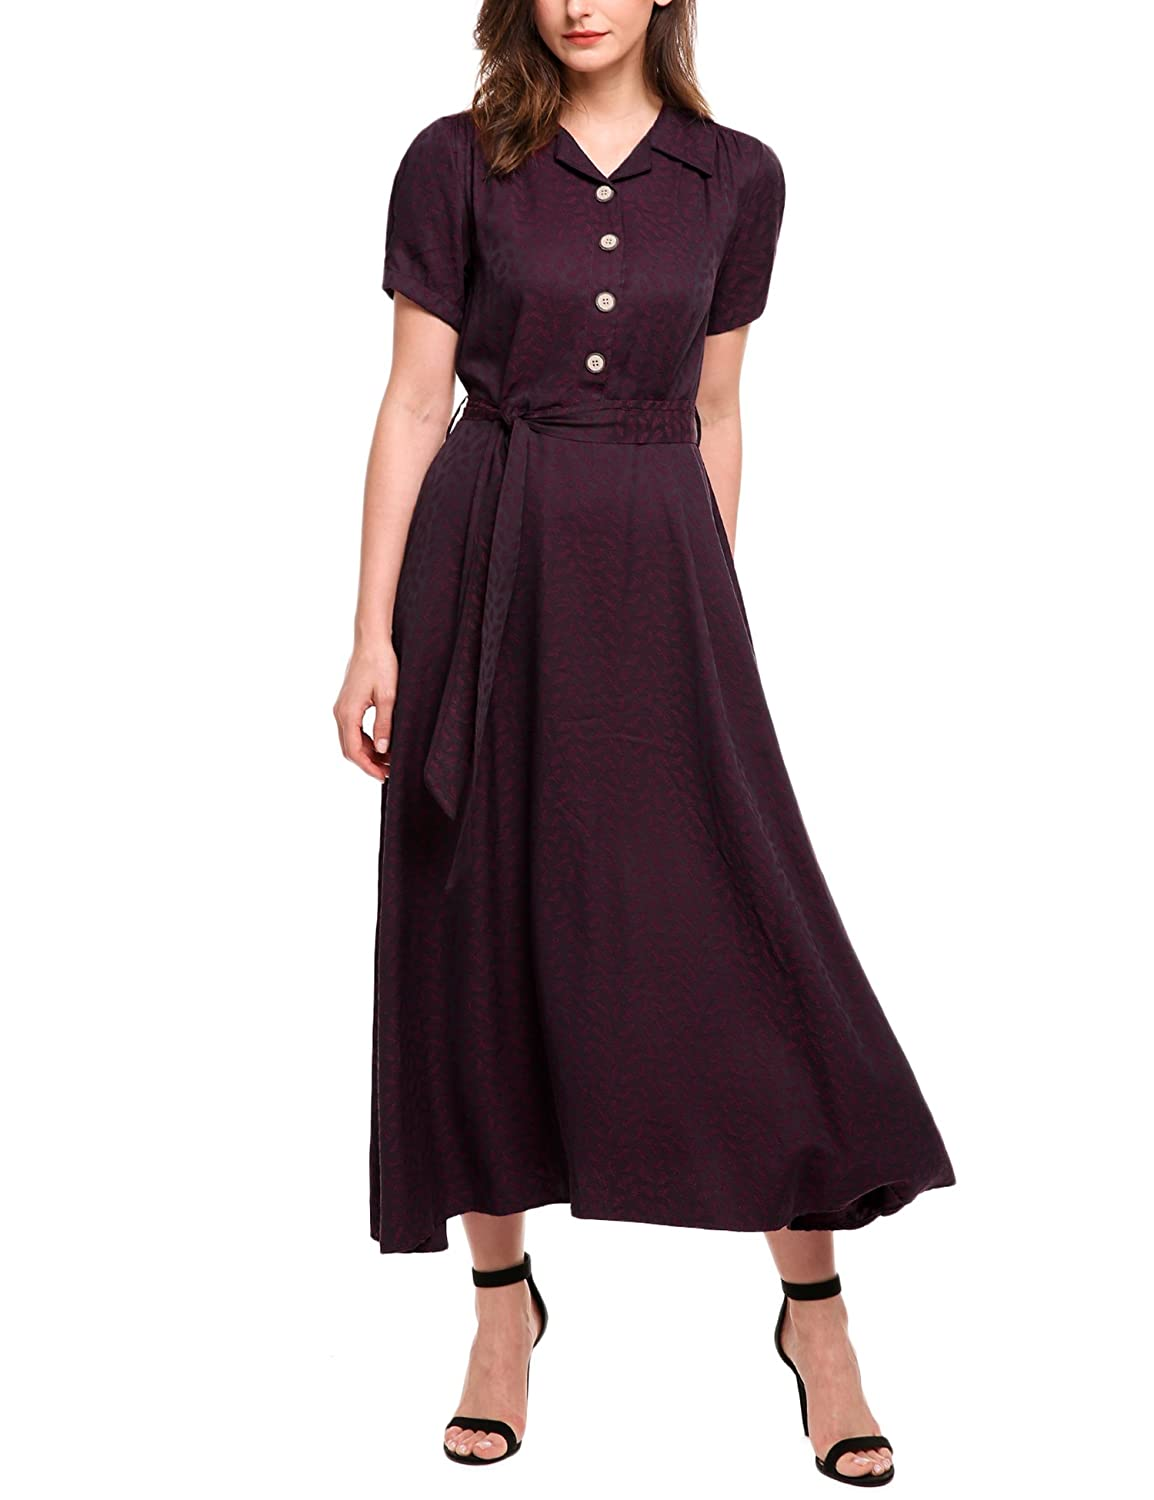 1940s Fashion Advice for Tall Women ACEVOG Women Vintage Style Turn Down Collar Short Sleeve High Waist Maxi Swing Dress with Belt $38.99 AT vintagedancer.com